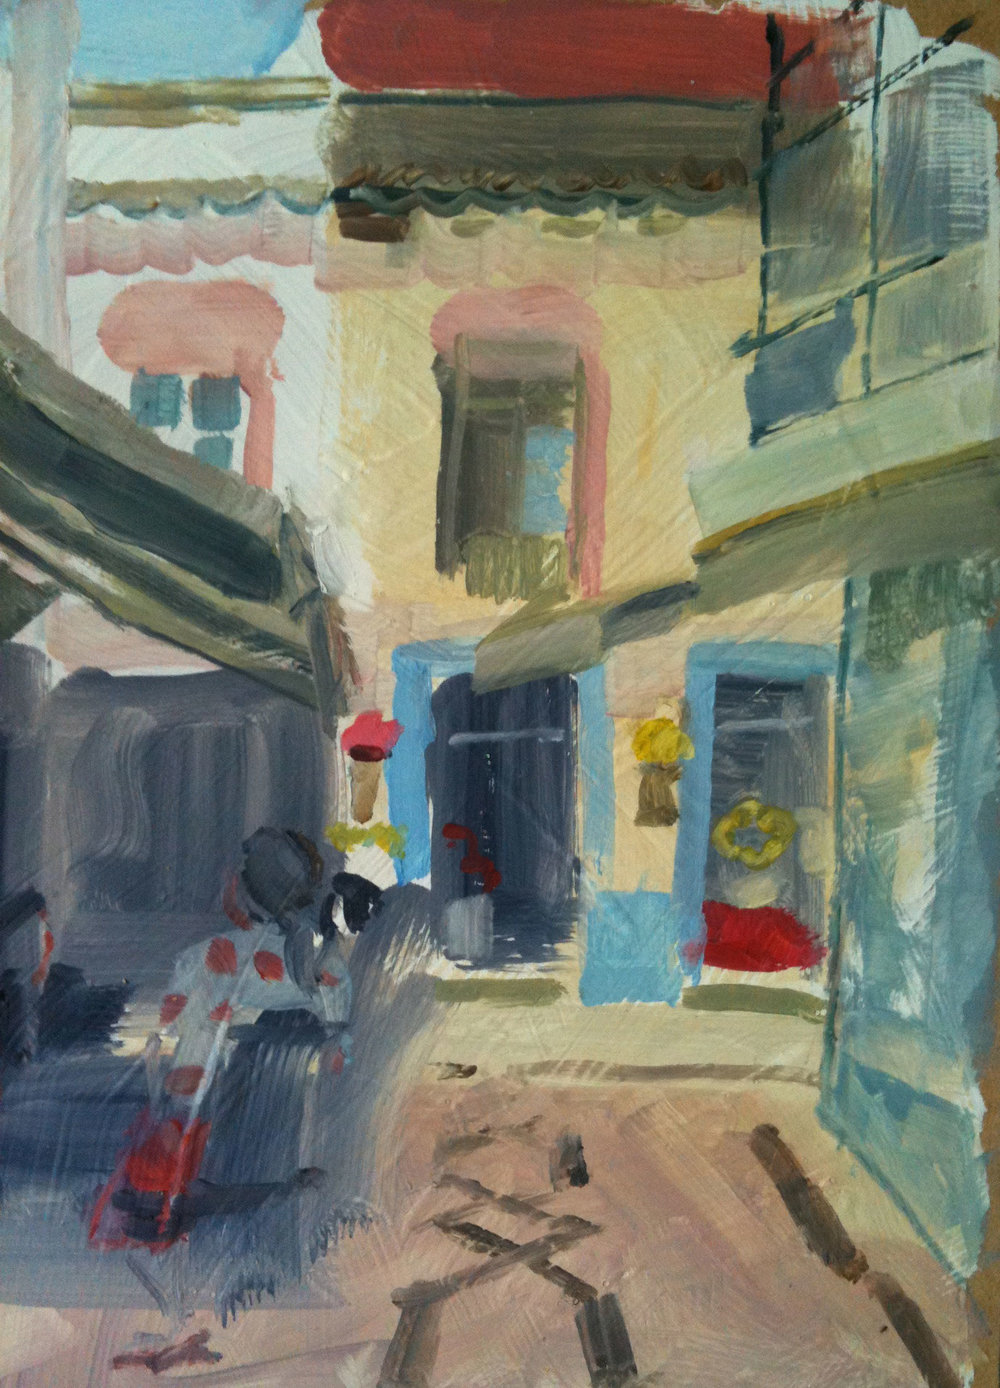 Flower Shop, Olhao, Portugal. Oil on board